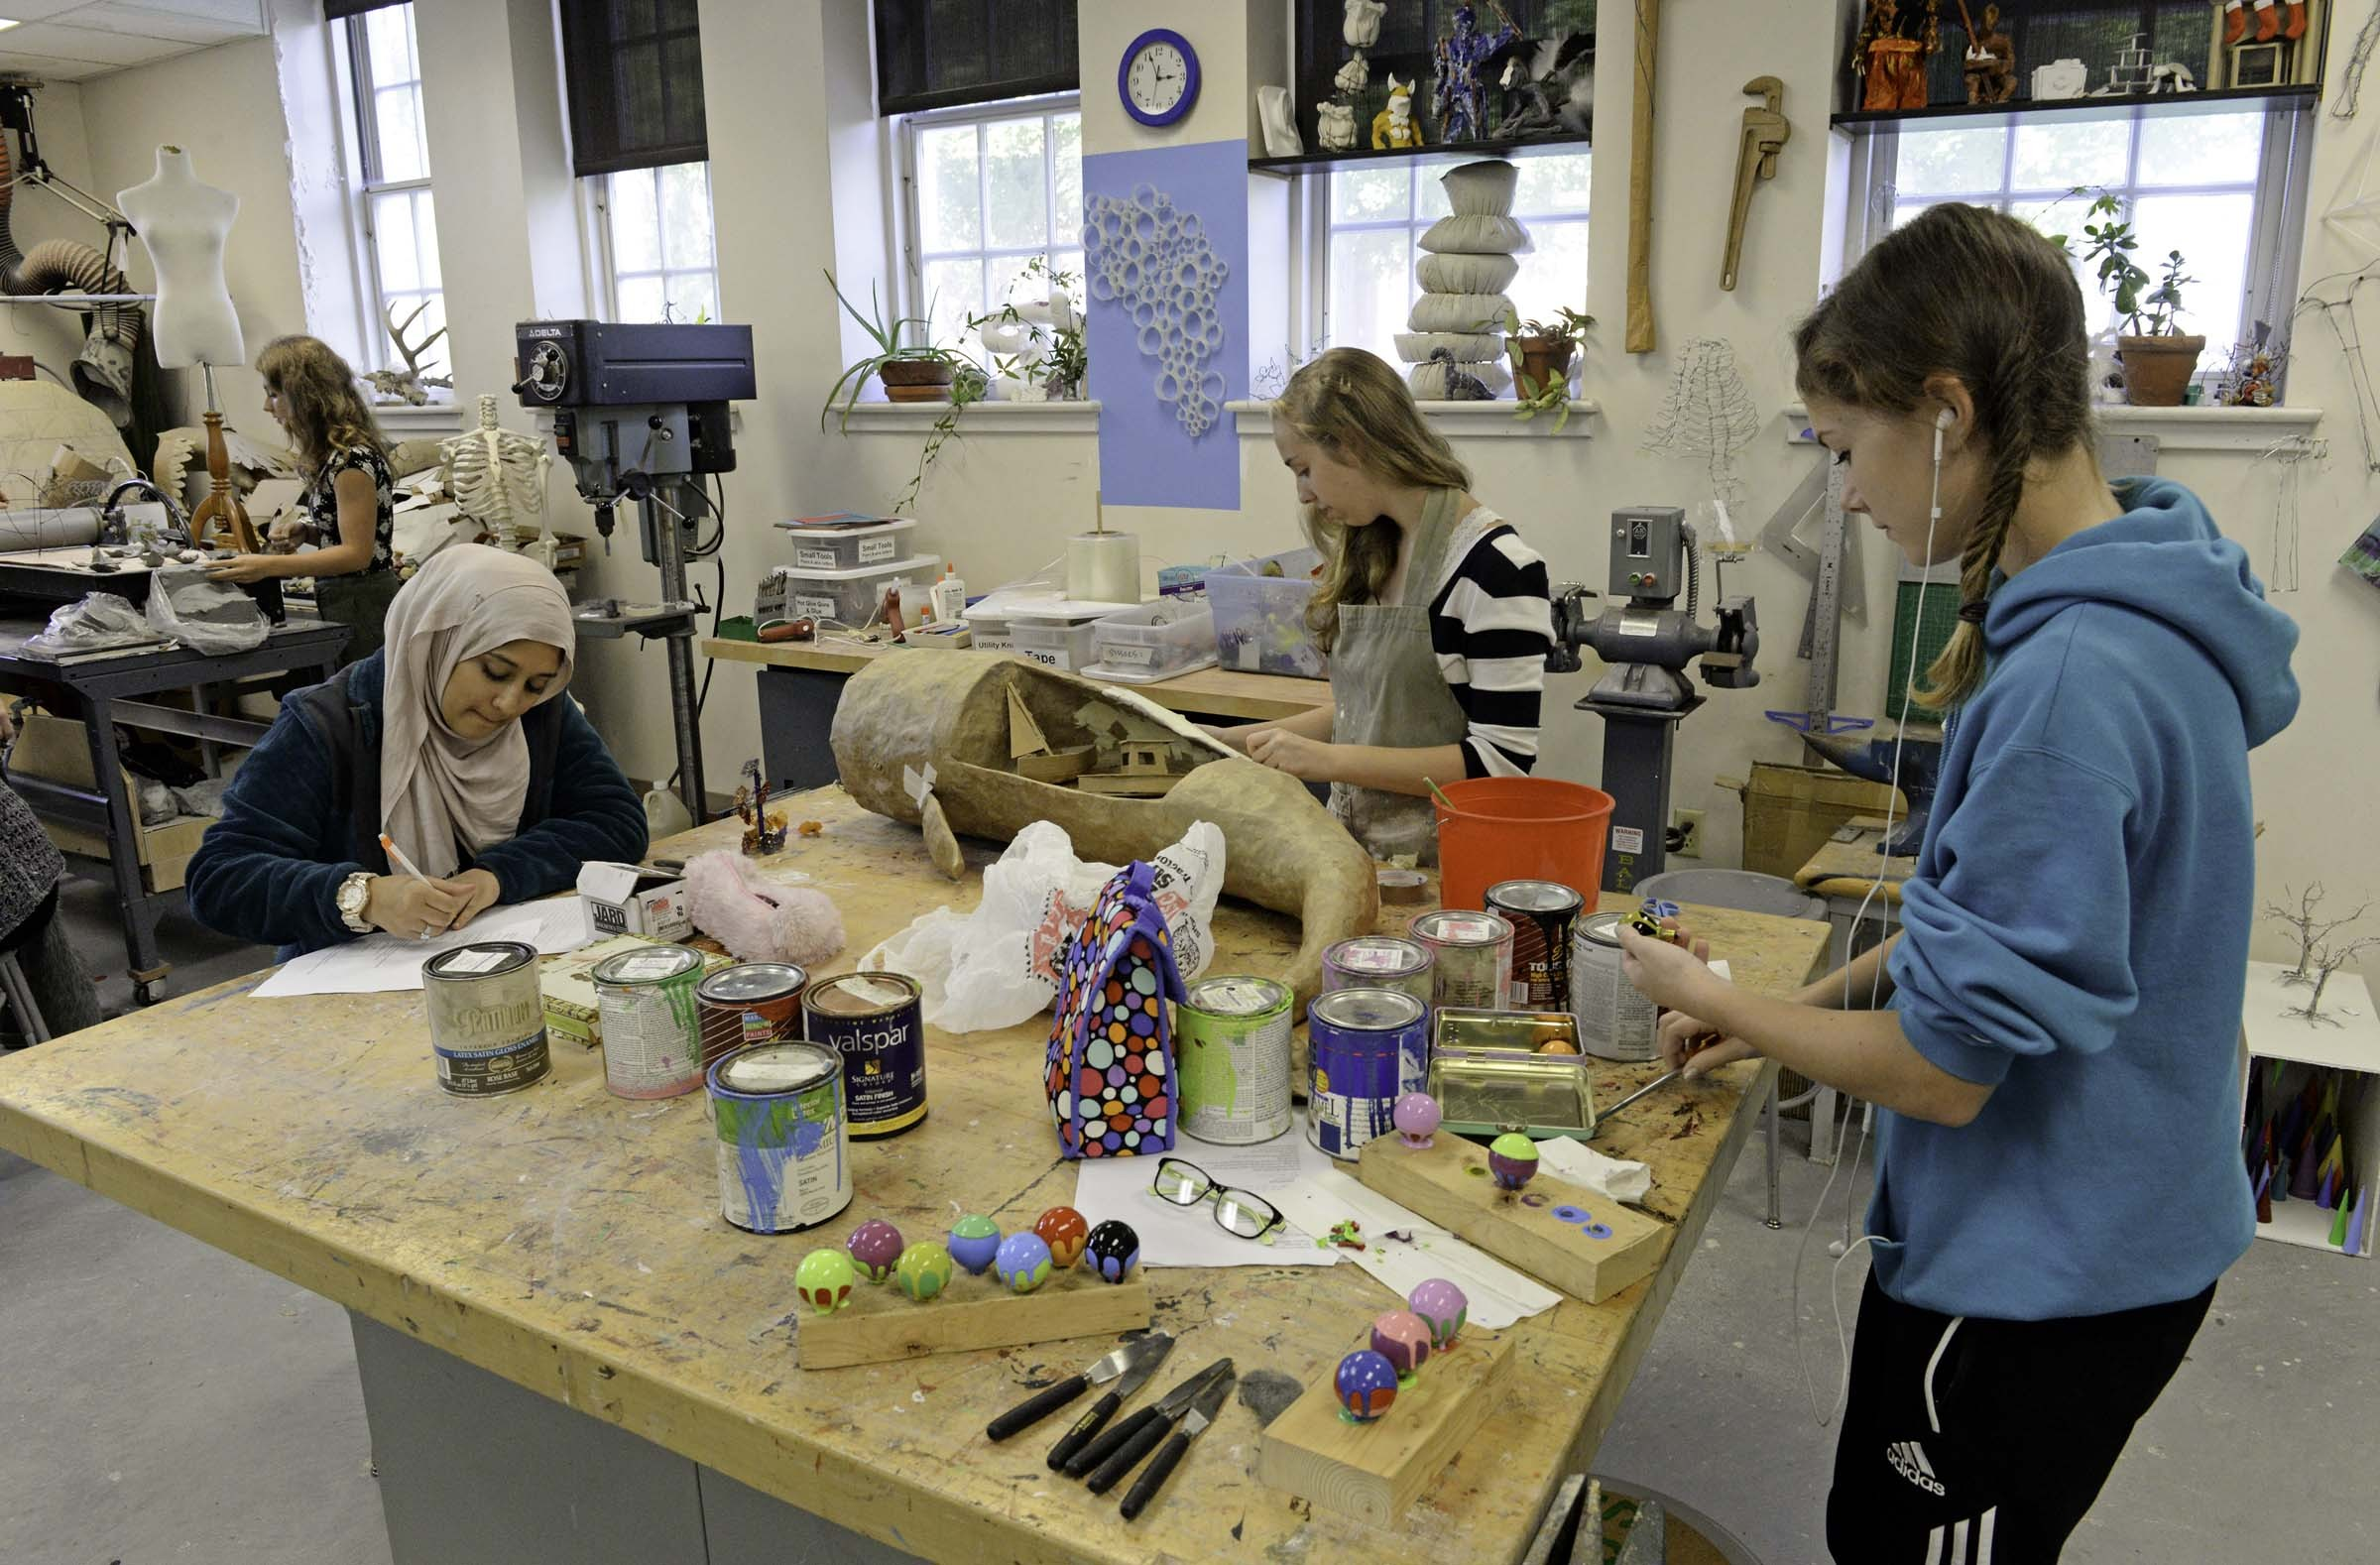 Sizza Sarooq, Cassie Williamson and Skye Shannon in class at the Governor's School. - SCOTT ELMQUIST